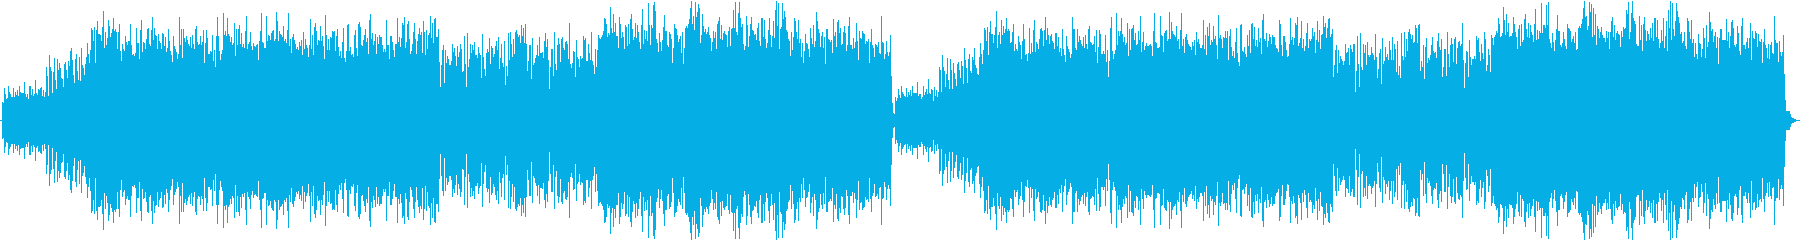 Cyberpunk city theme's reproduced waveform